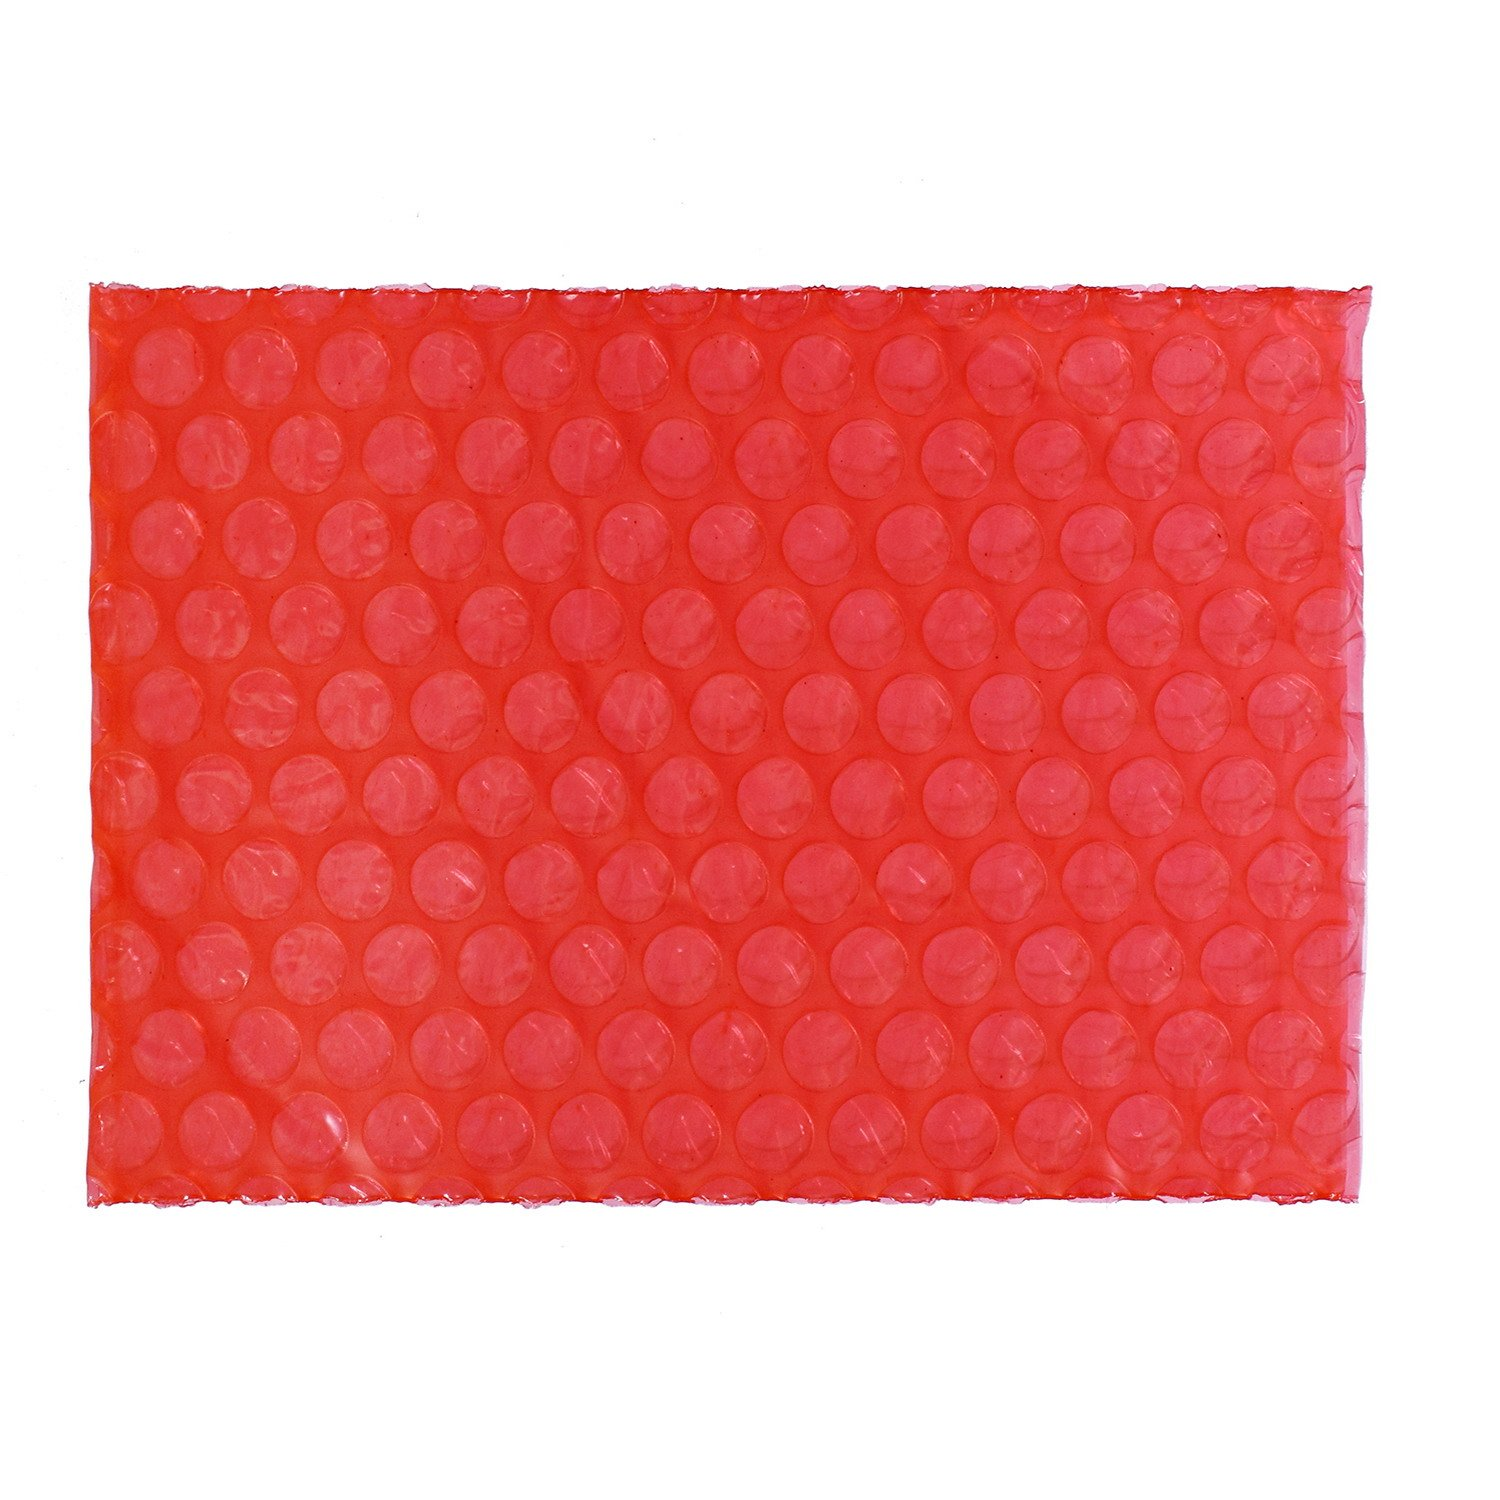 Generic Anti Static Bubble Packing Pouches Bag Smooth on Both Sides 2.5' x 3' - 10 PCS XSY ABF_6.5*7.5_PCS 10_026